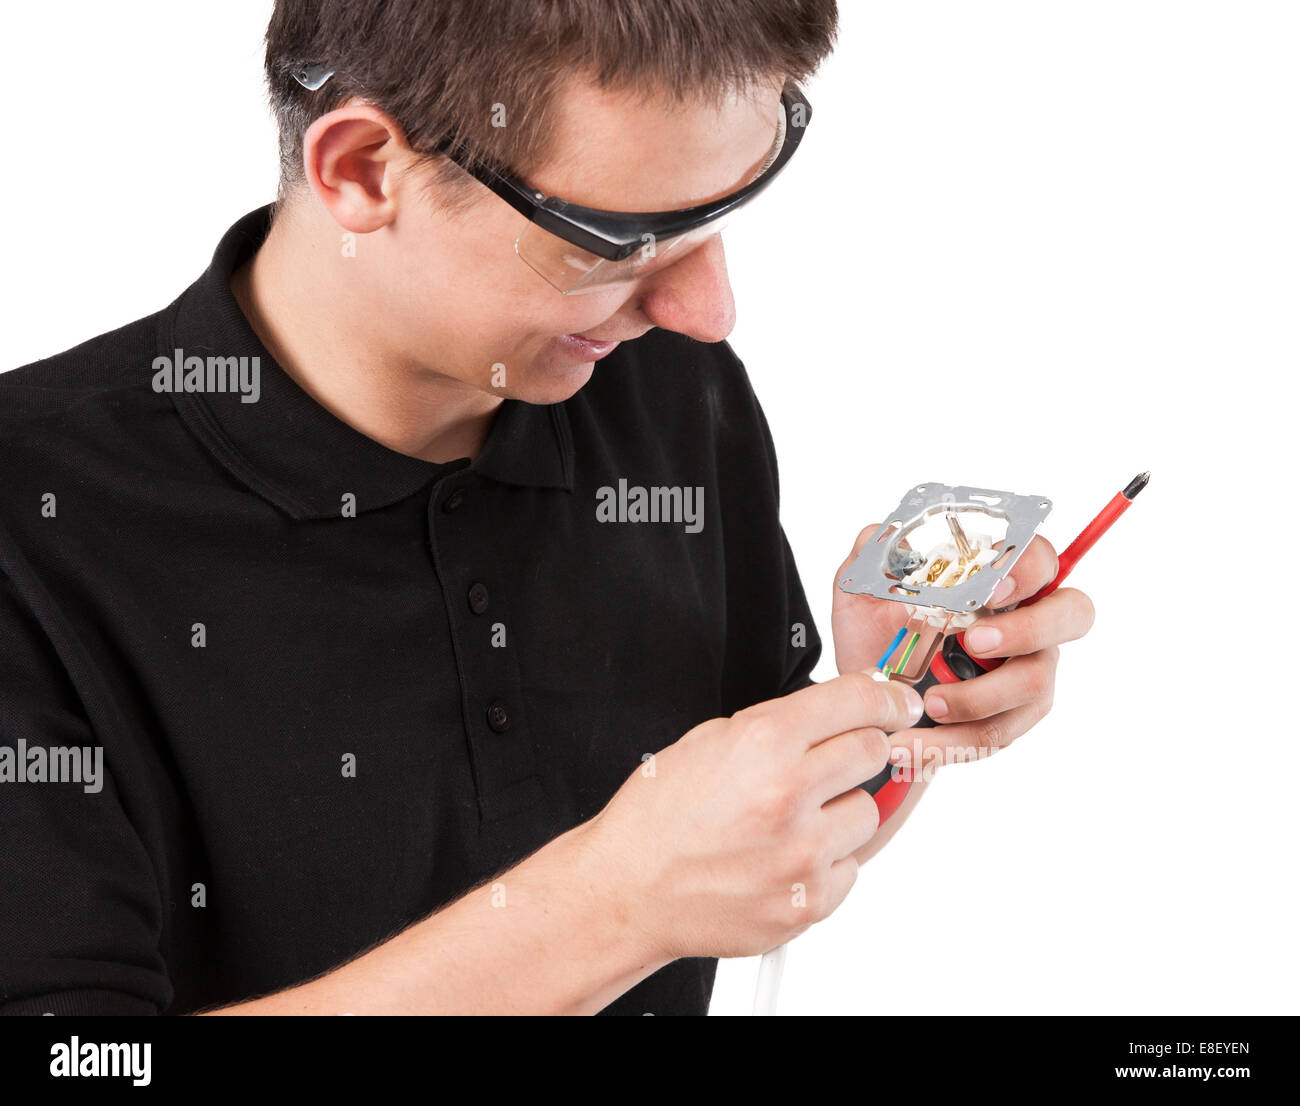 Male serviceman working with cables and electrical outlet. - Stock Image